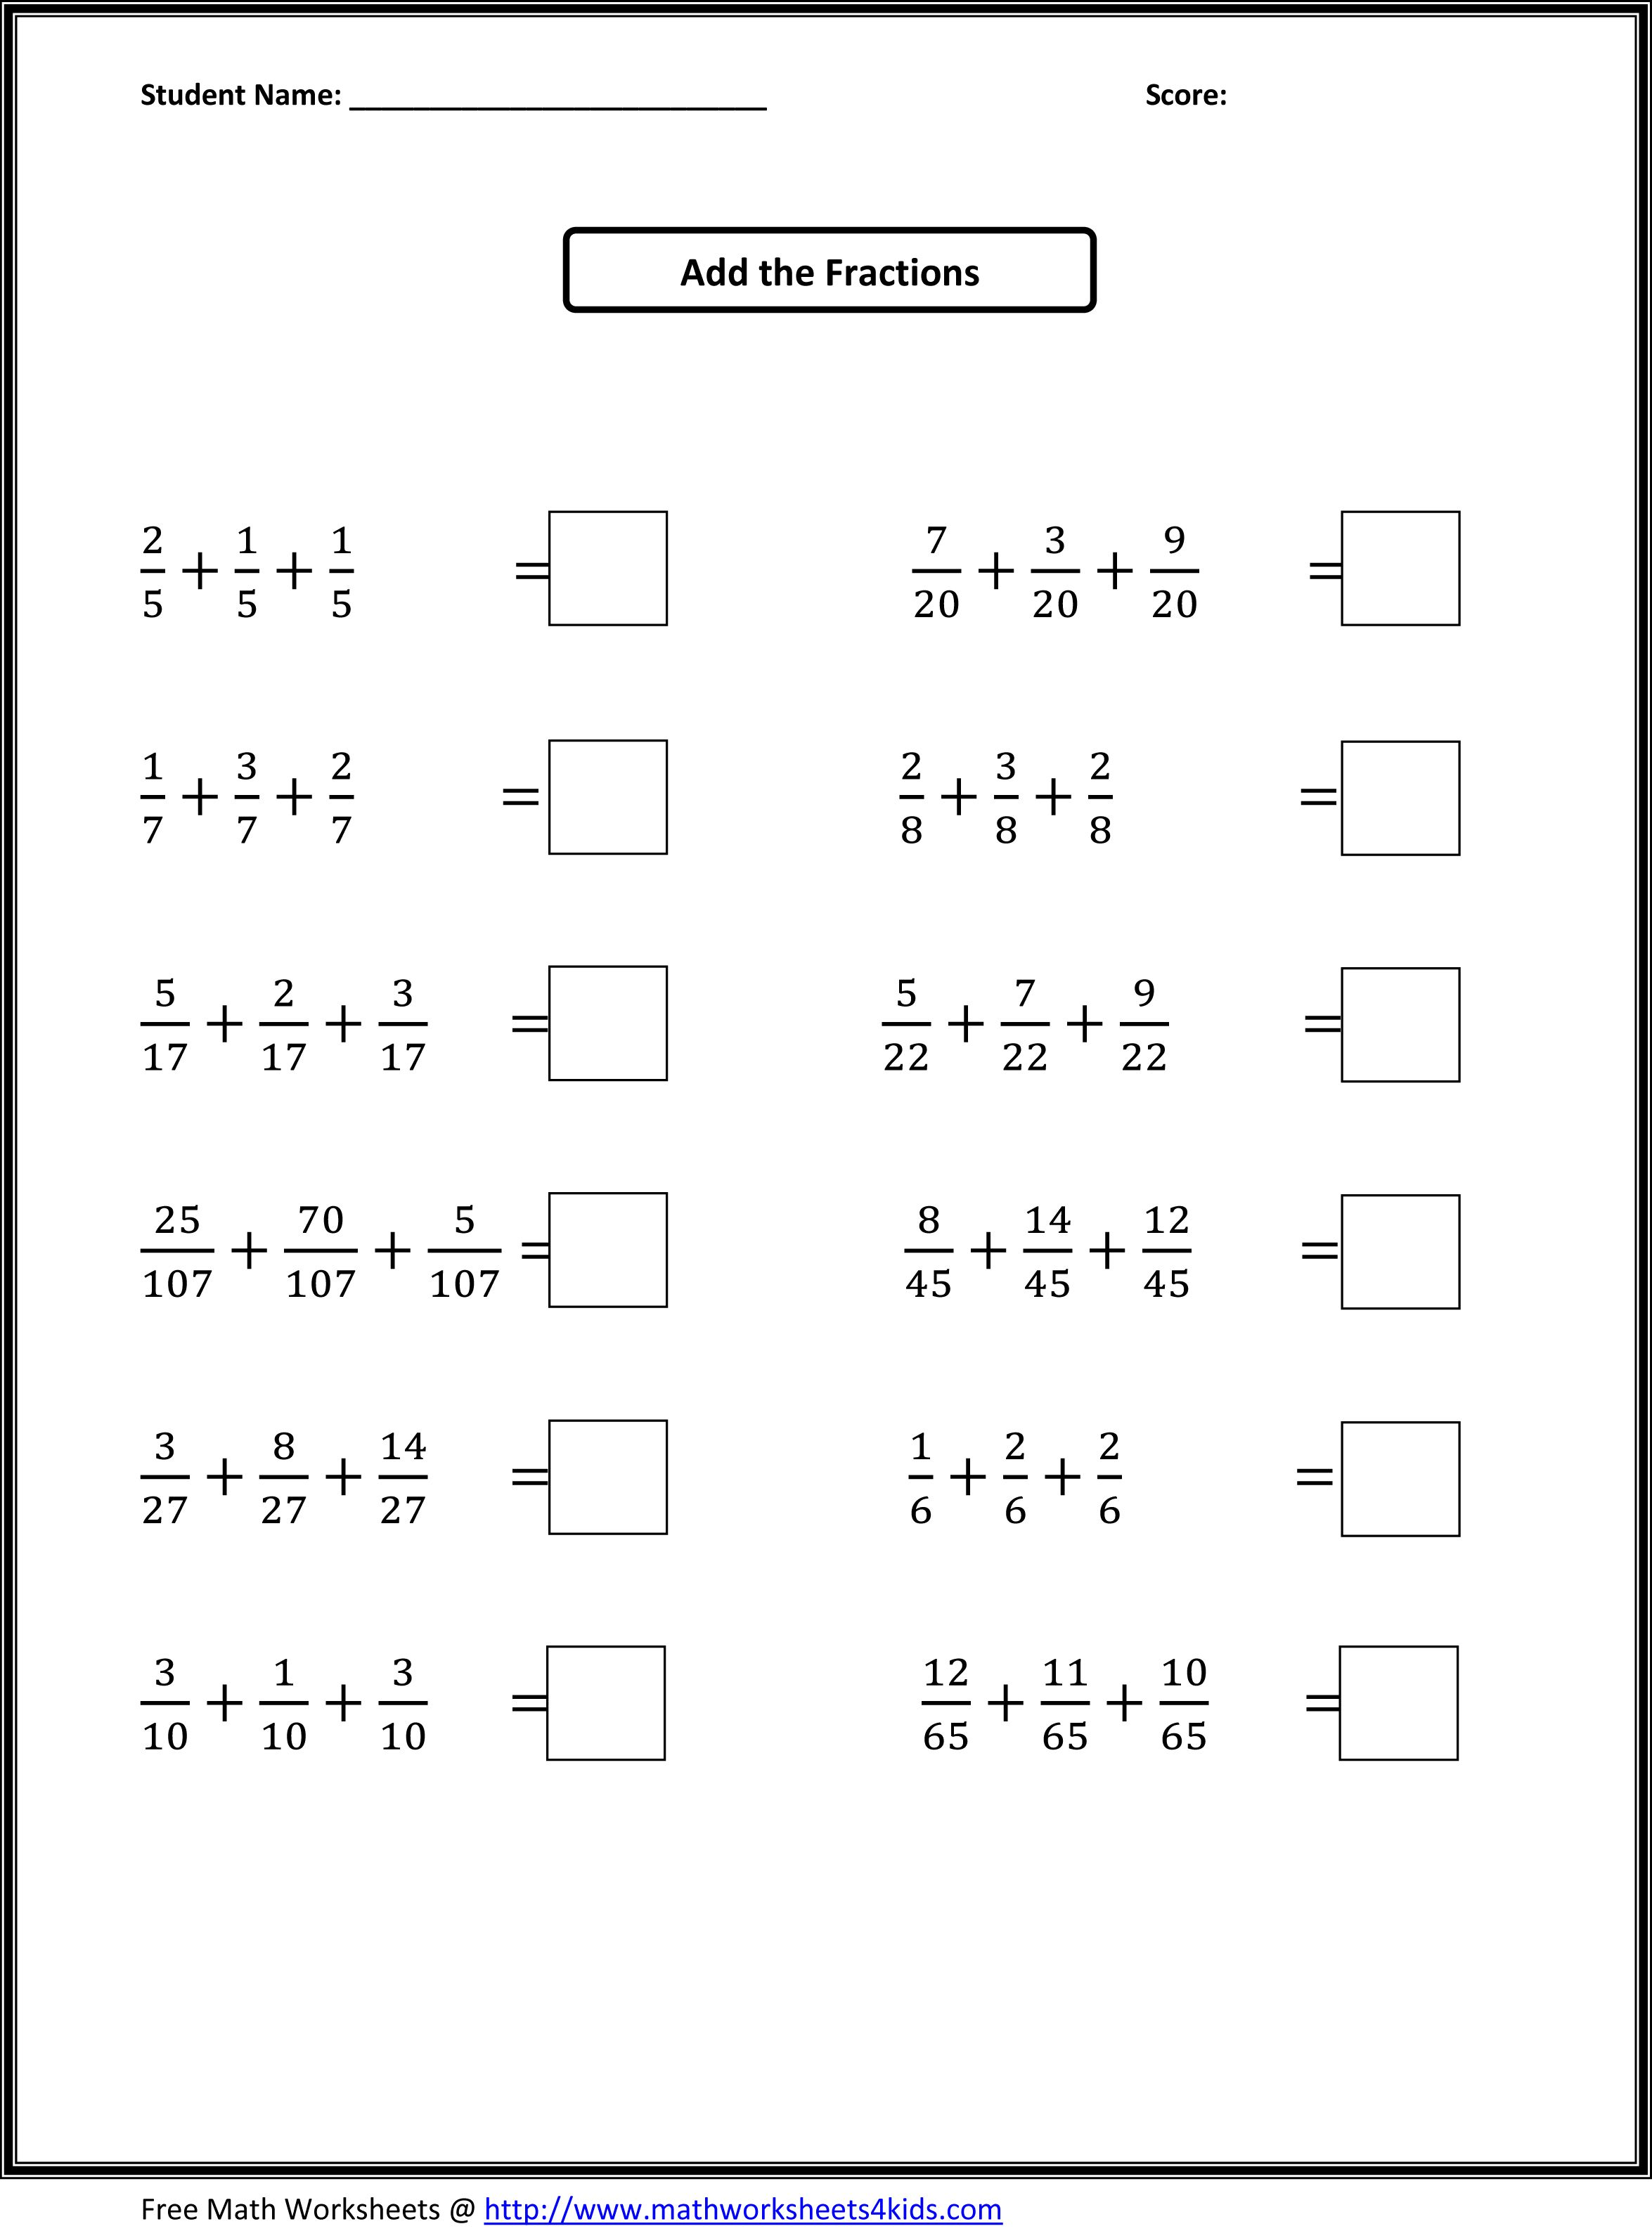 Worksheets Math Worksheets For 4th Grade With Answer Key worksheets for all early ed grades topics of math math